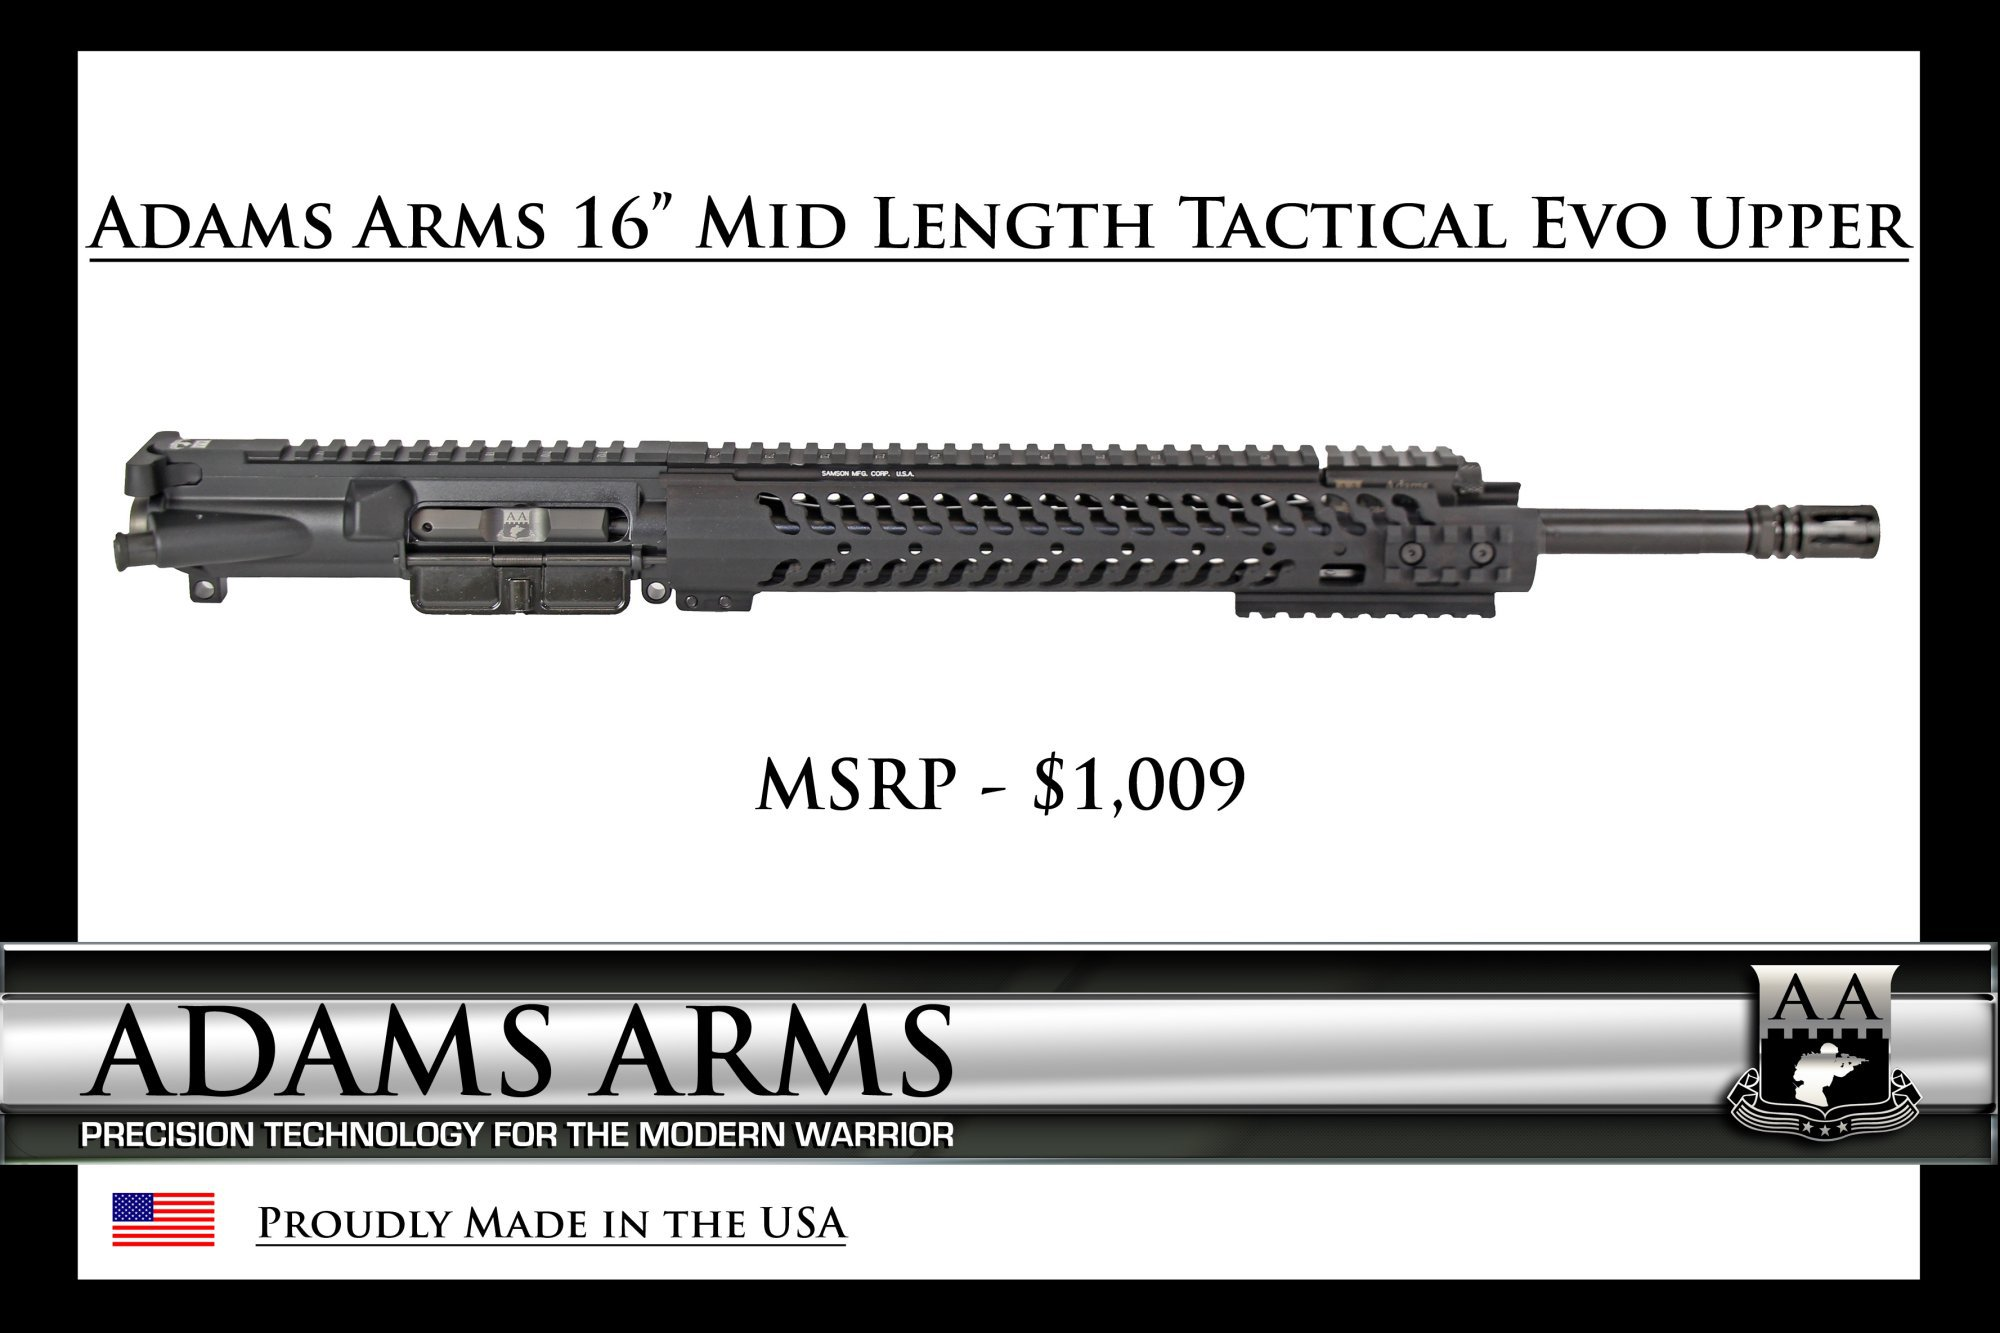 Adams Arms AA 16 inch Mid Length Tactical Evo Piston AR Upper Receiver Tactical AR Carbine Upper 1 Adams Arms (AA) Tactical Evo Piston AR (AR 15/M16 Rifle / M4/M4A1 Carbine) Uppers (Upper Receivers) with Samson Evolution Rail System/Tactical Handguards for Martial Combat and Tactical Training (Videos!)